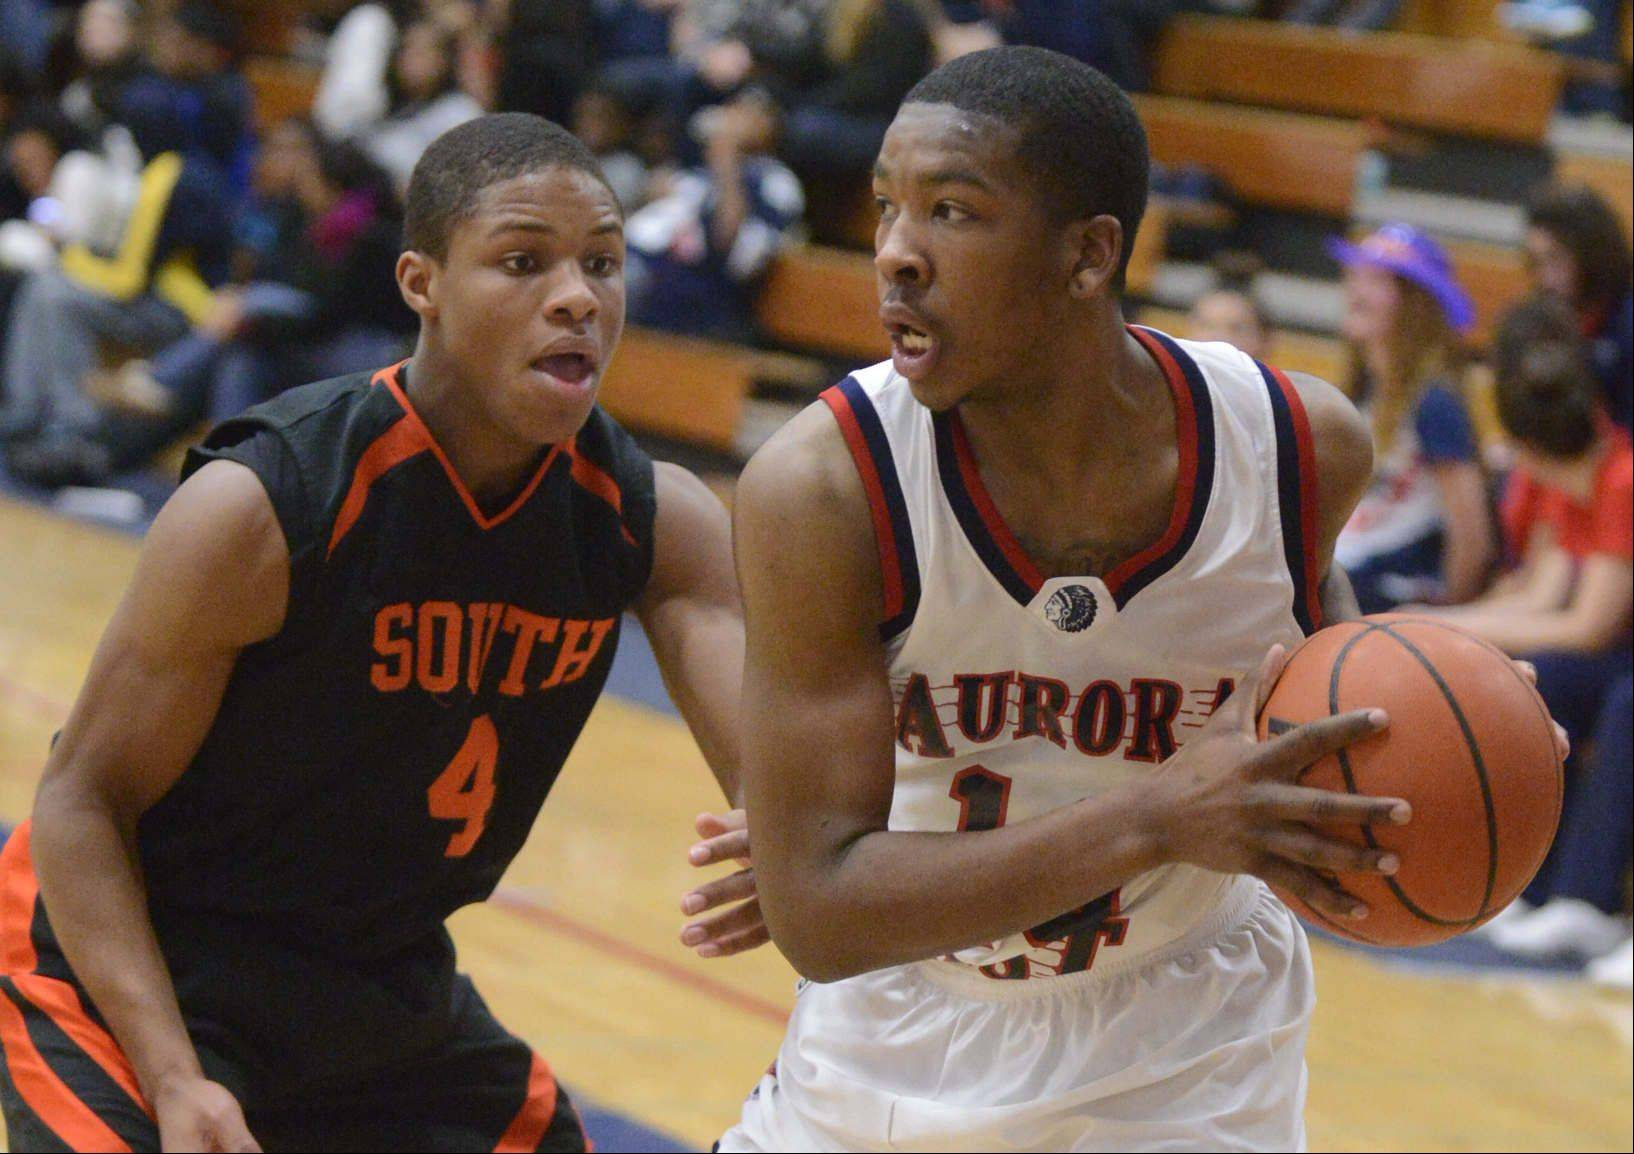 Images: Wheaton Warrenville South at West Aurora boys basketball